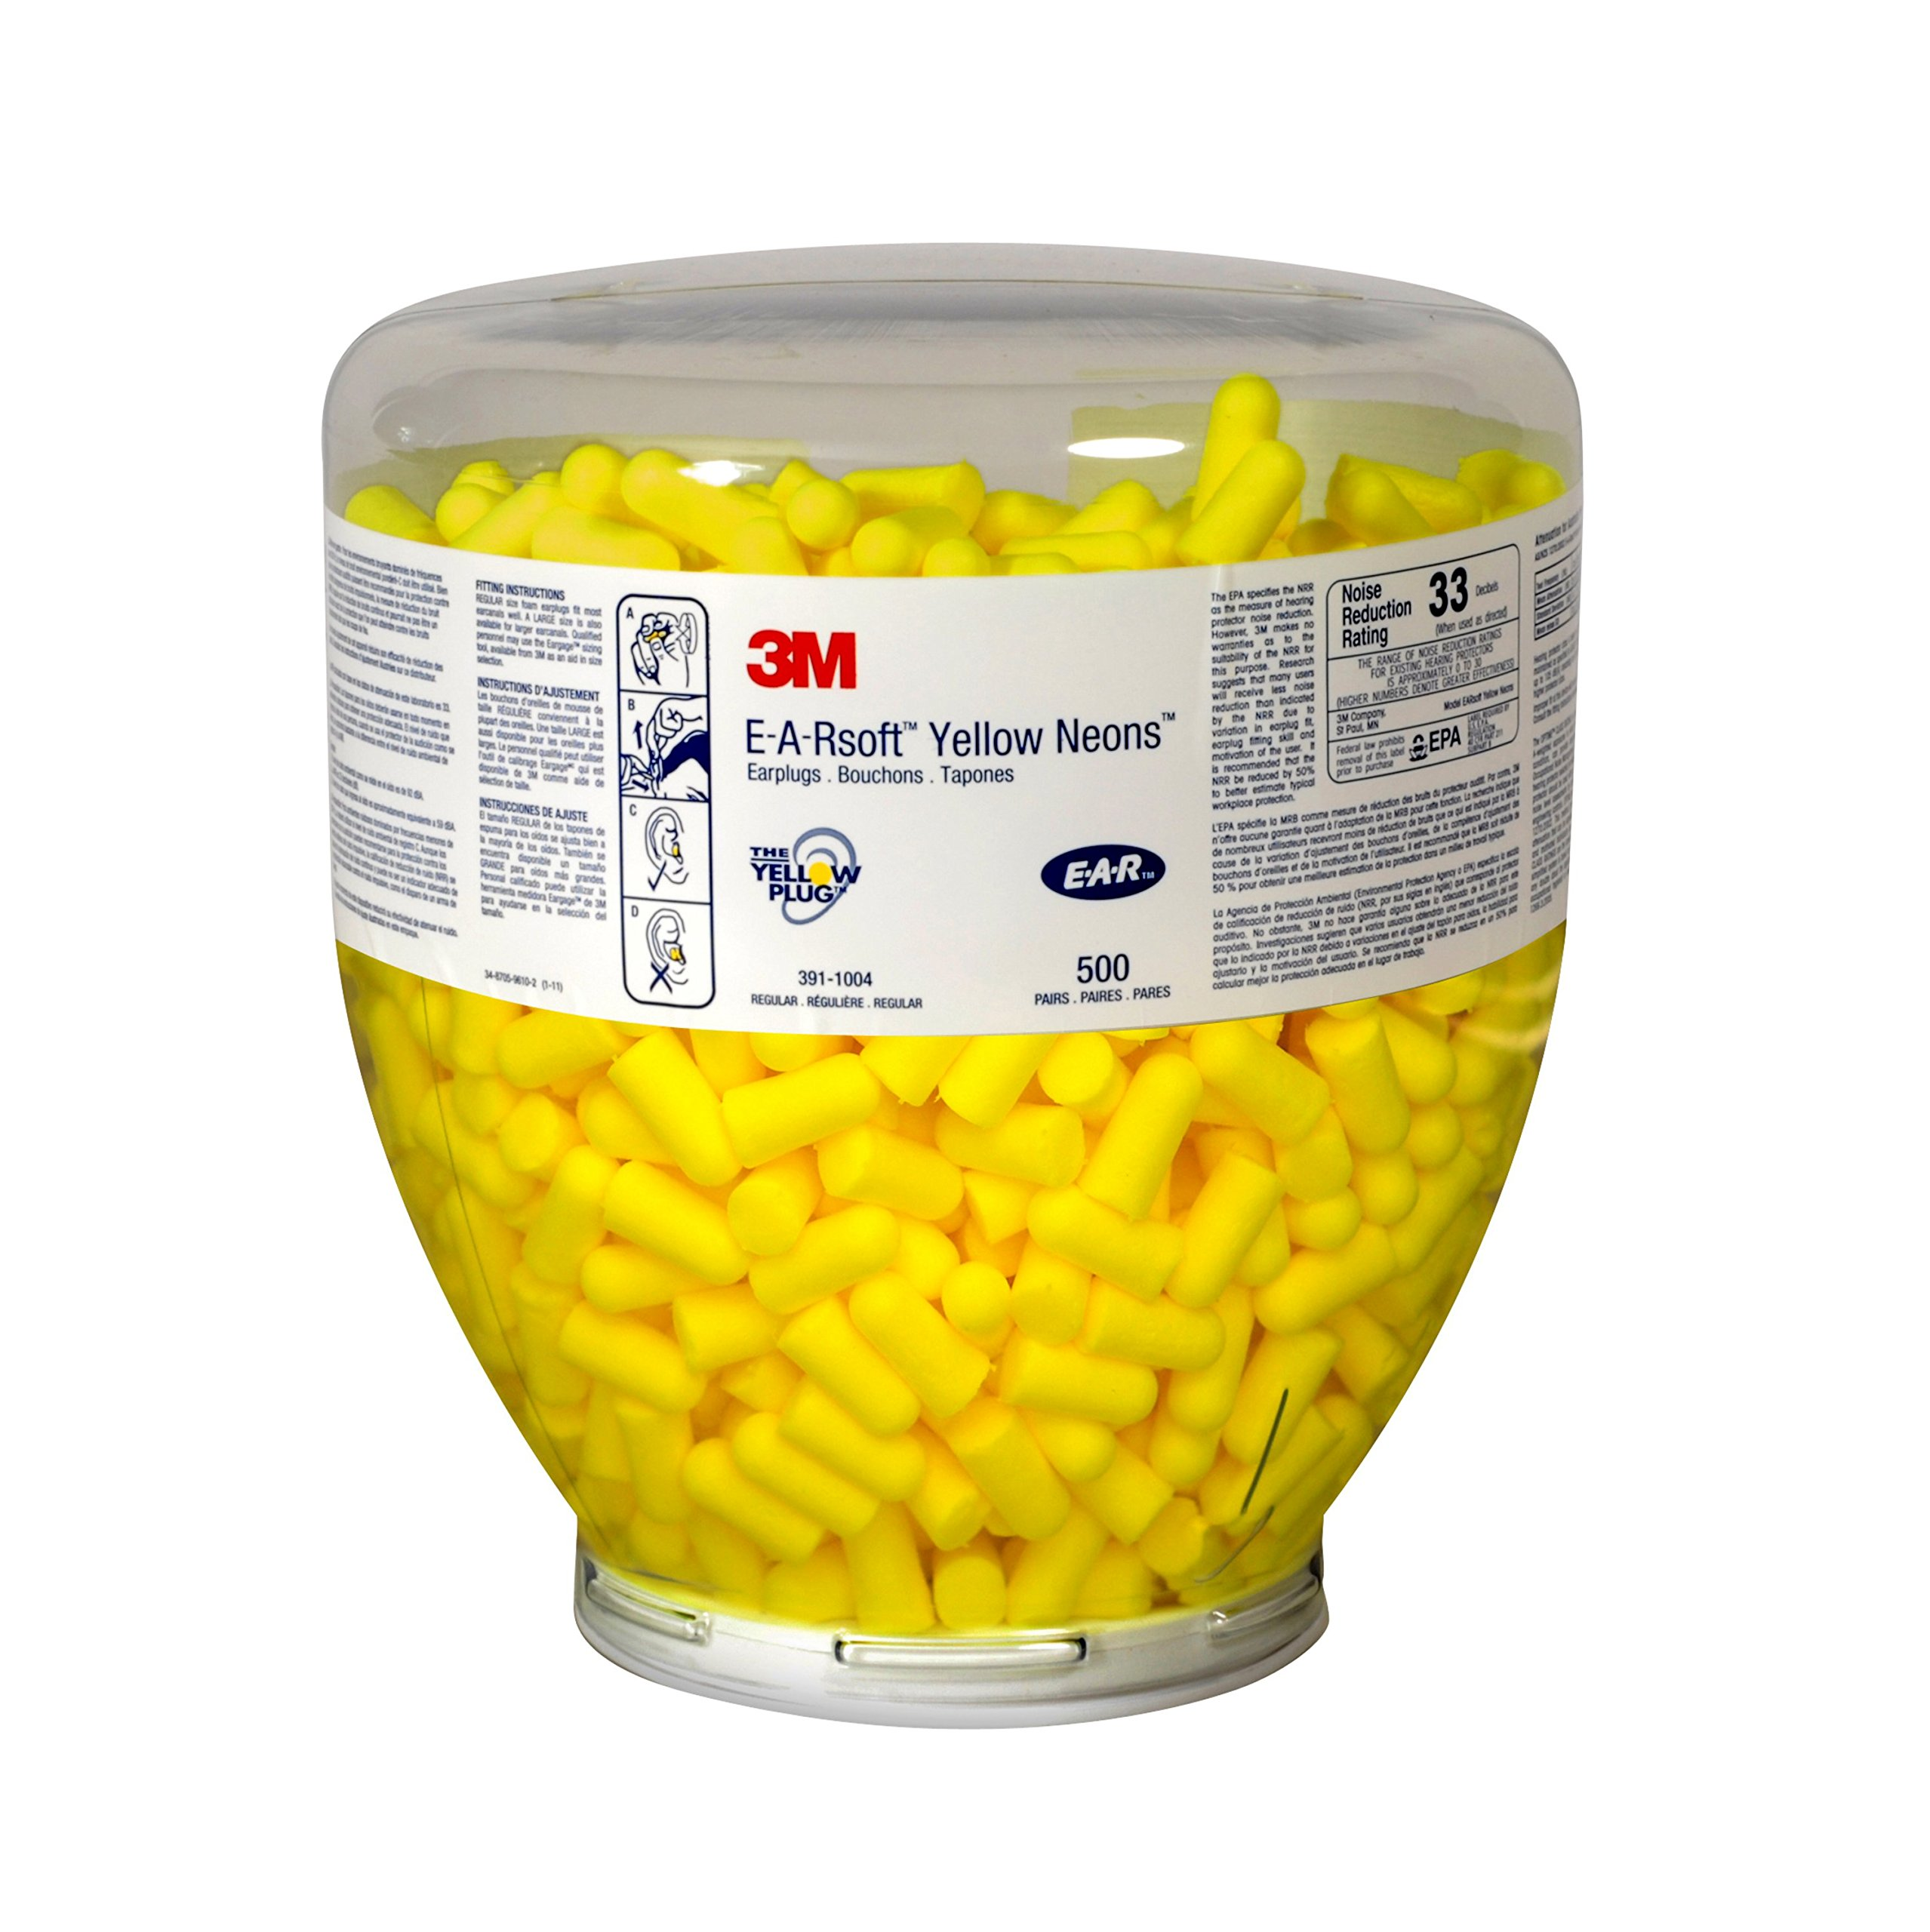 3M E-A-Rsoft Yellow Neons One Touch Refill Earplugs 391-1004 (500 Pairs) by 3M Personal Protective Equipment